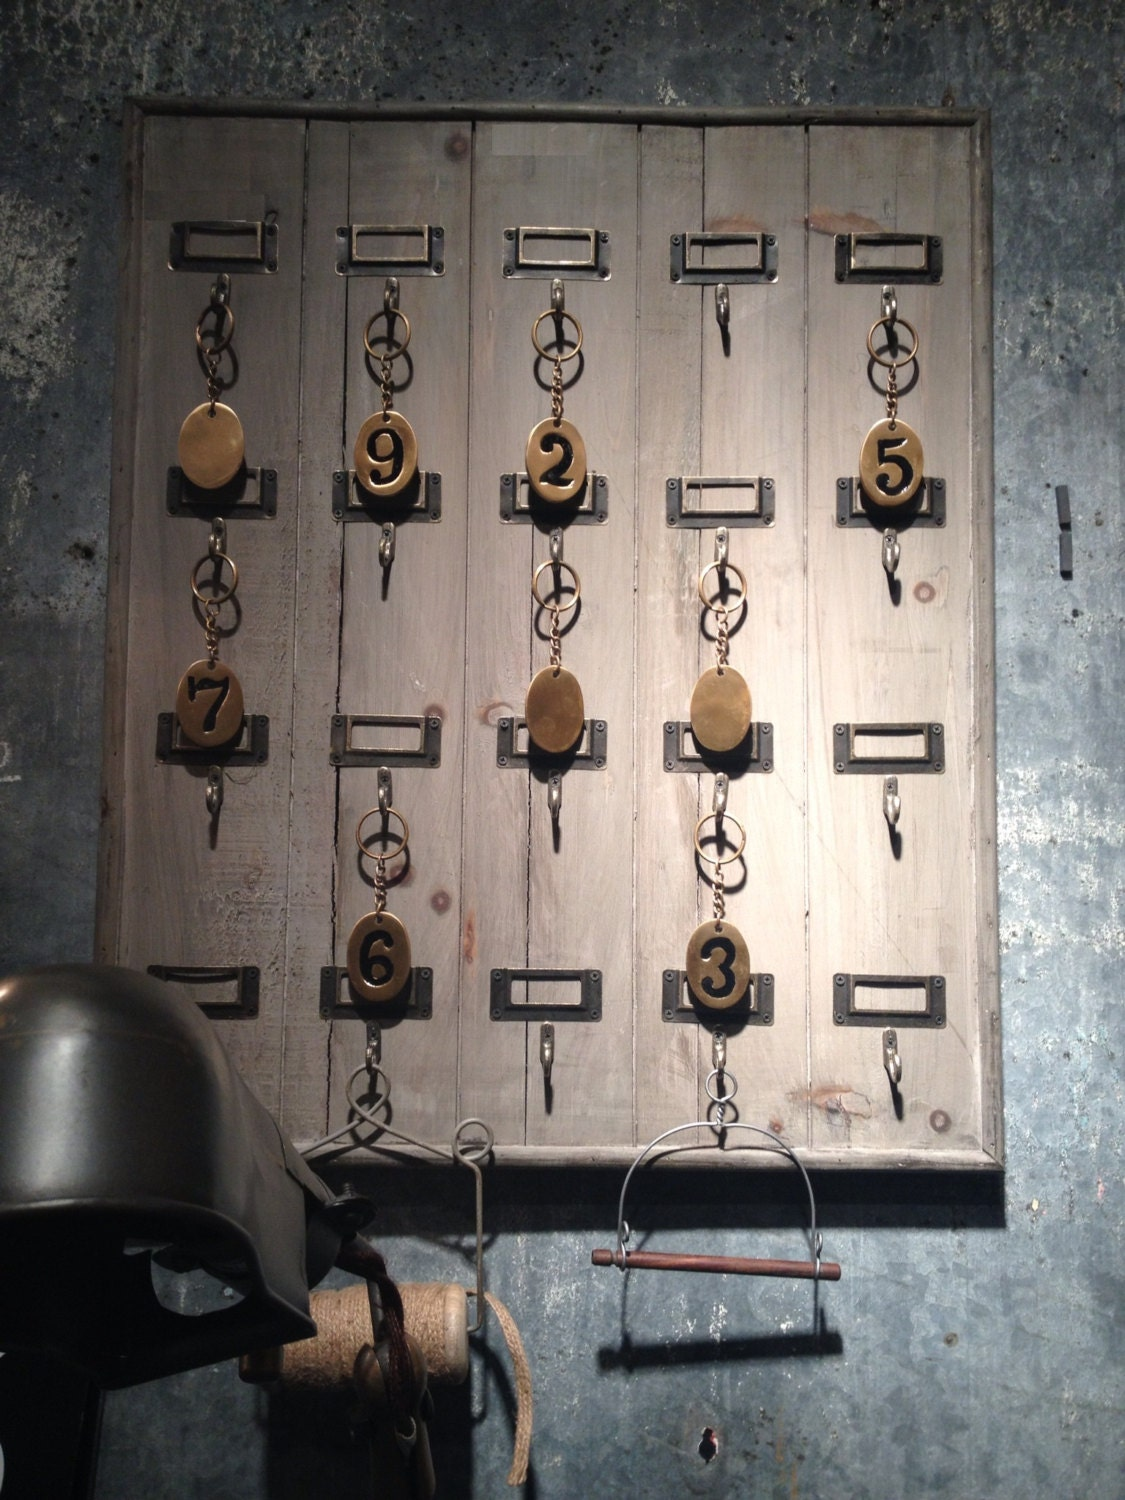 Reclaimed Wood Hotel 20 Hook Large Key Rack Holder Wall